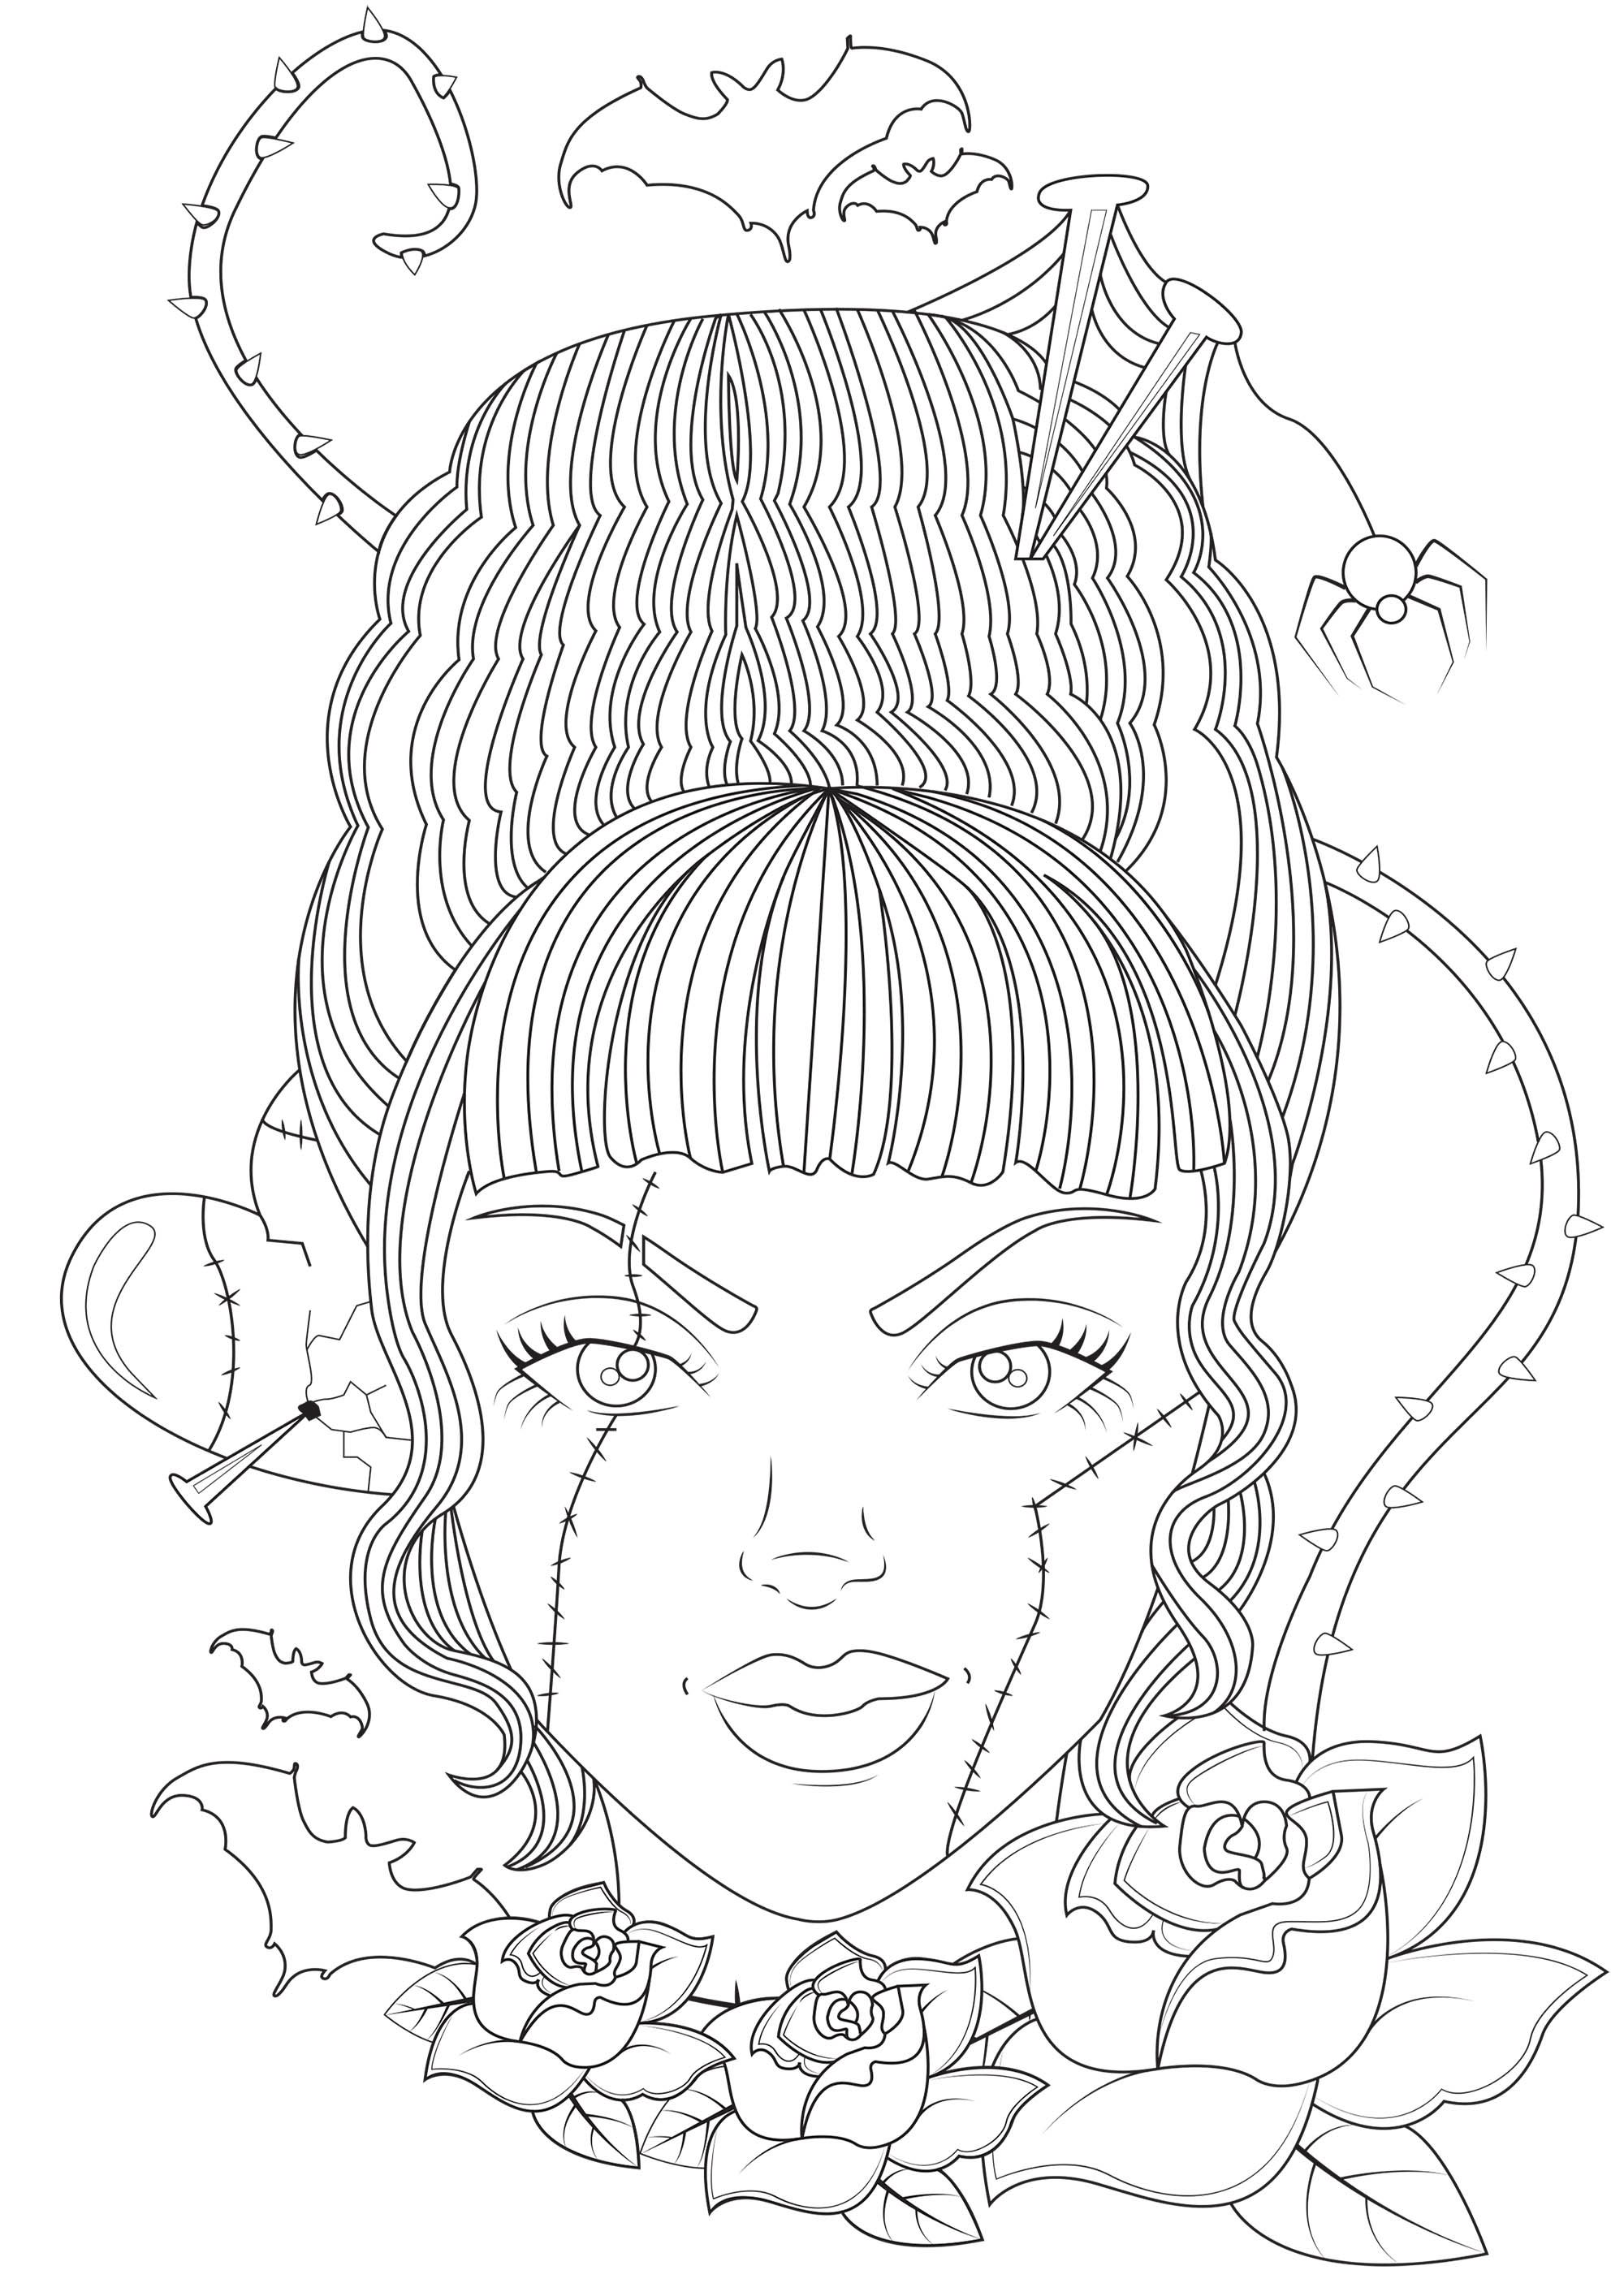 Bride Of Frankenstein Halloween Coloring Pages For Adults Just